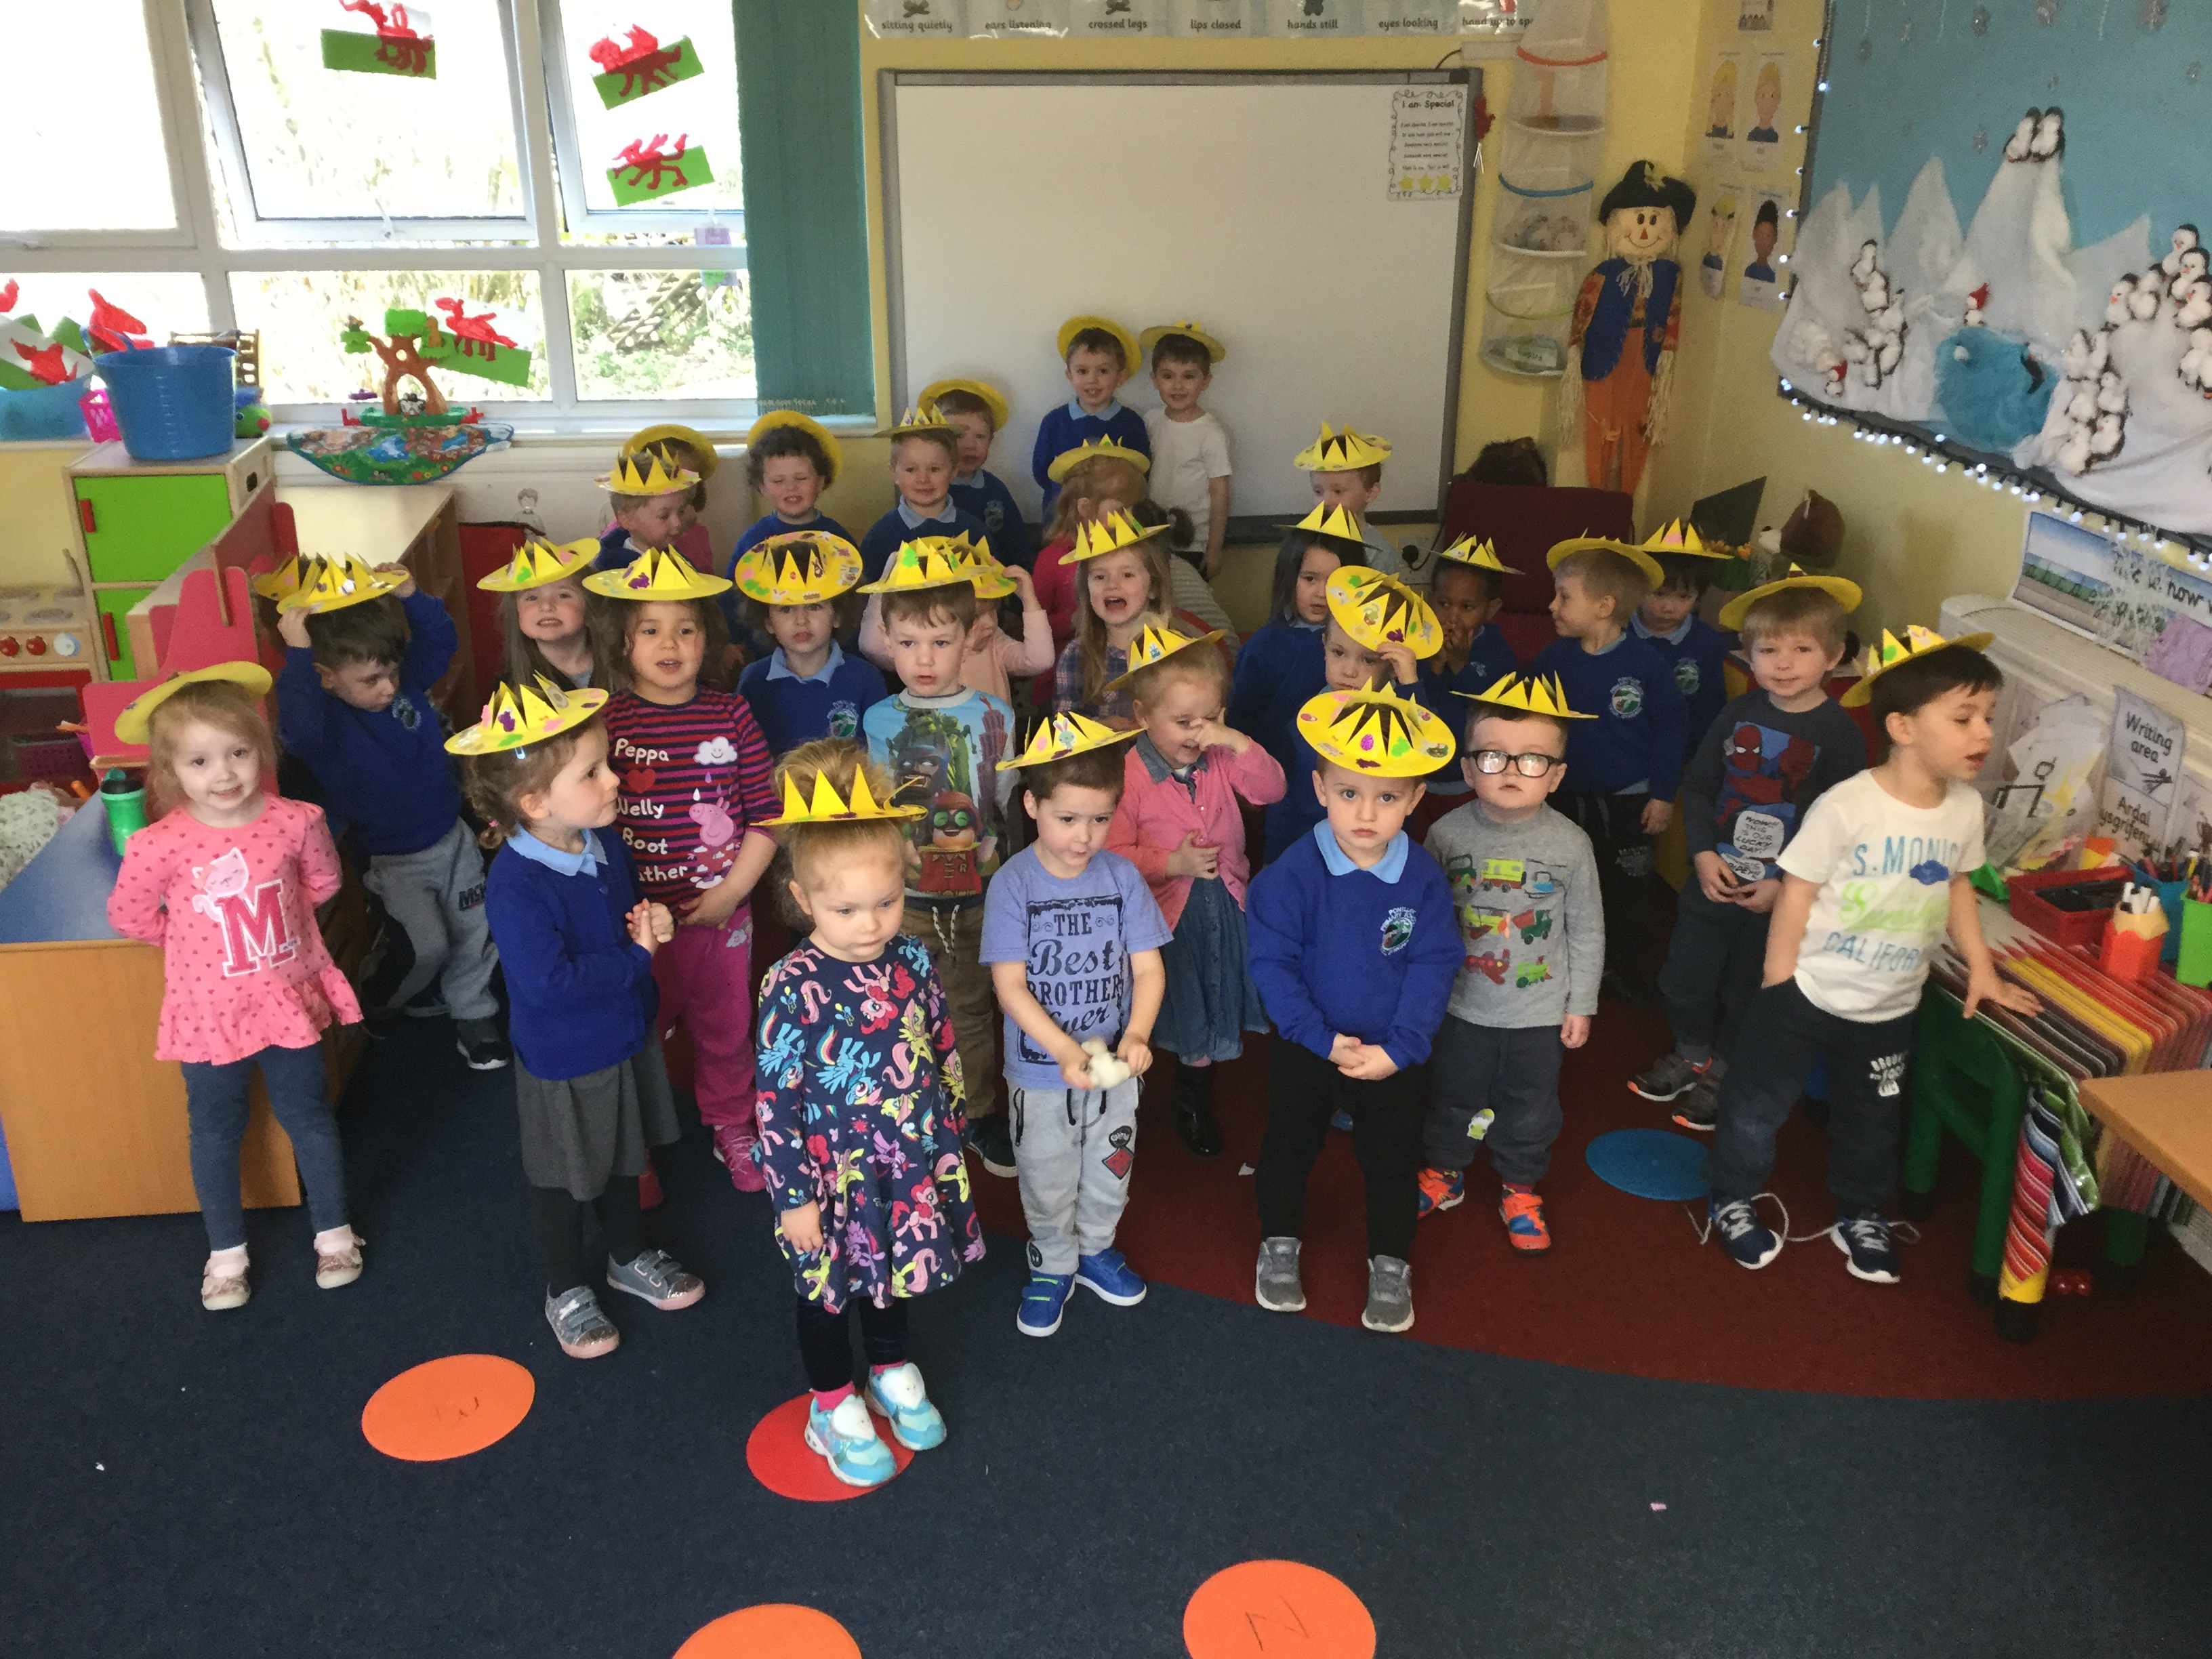 Look at our lovely Easter crowns!